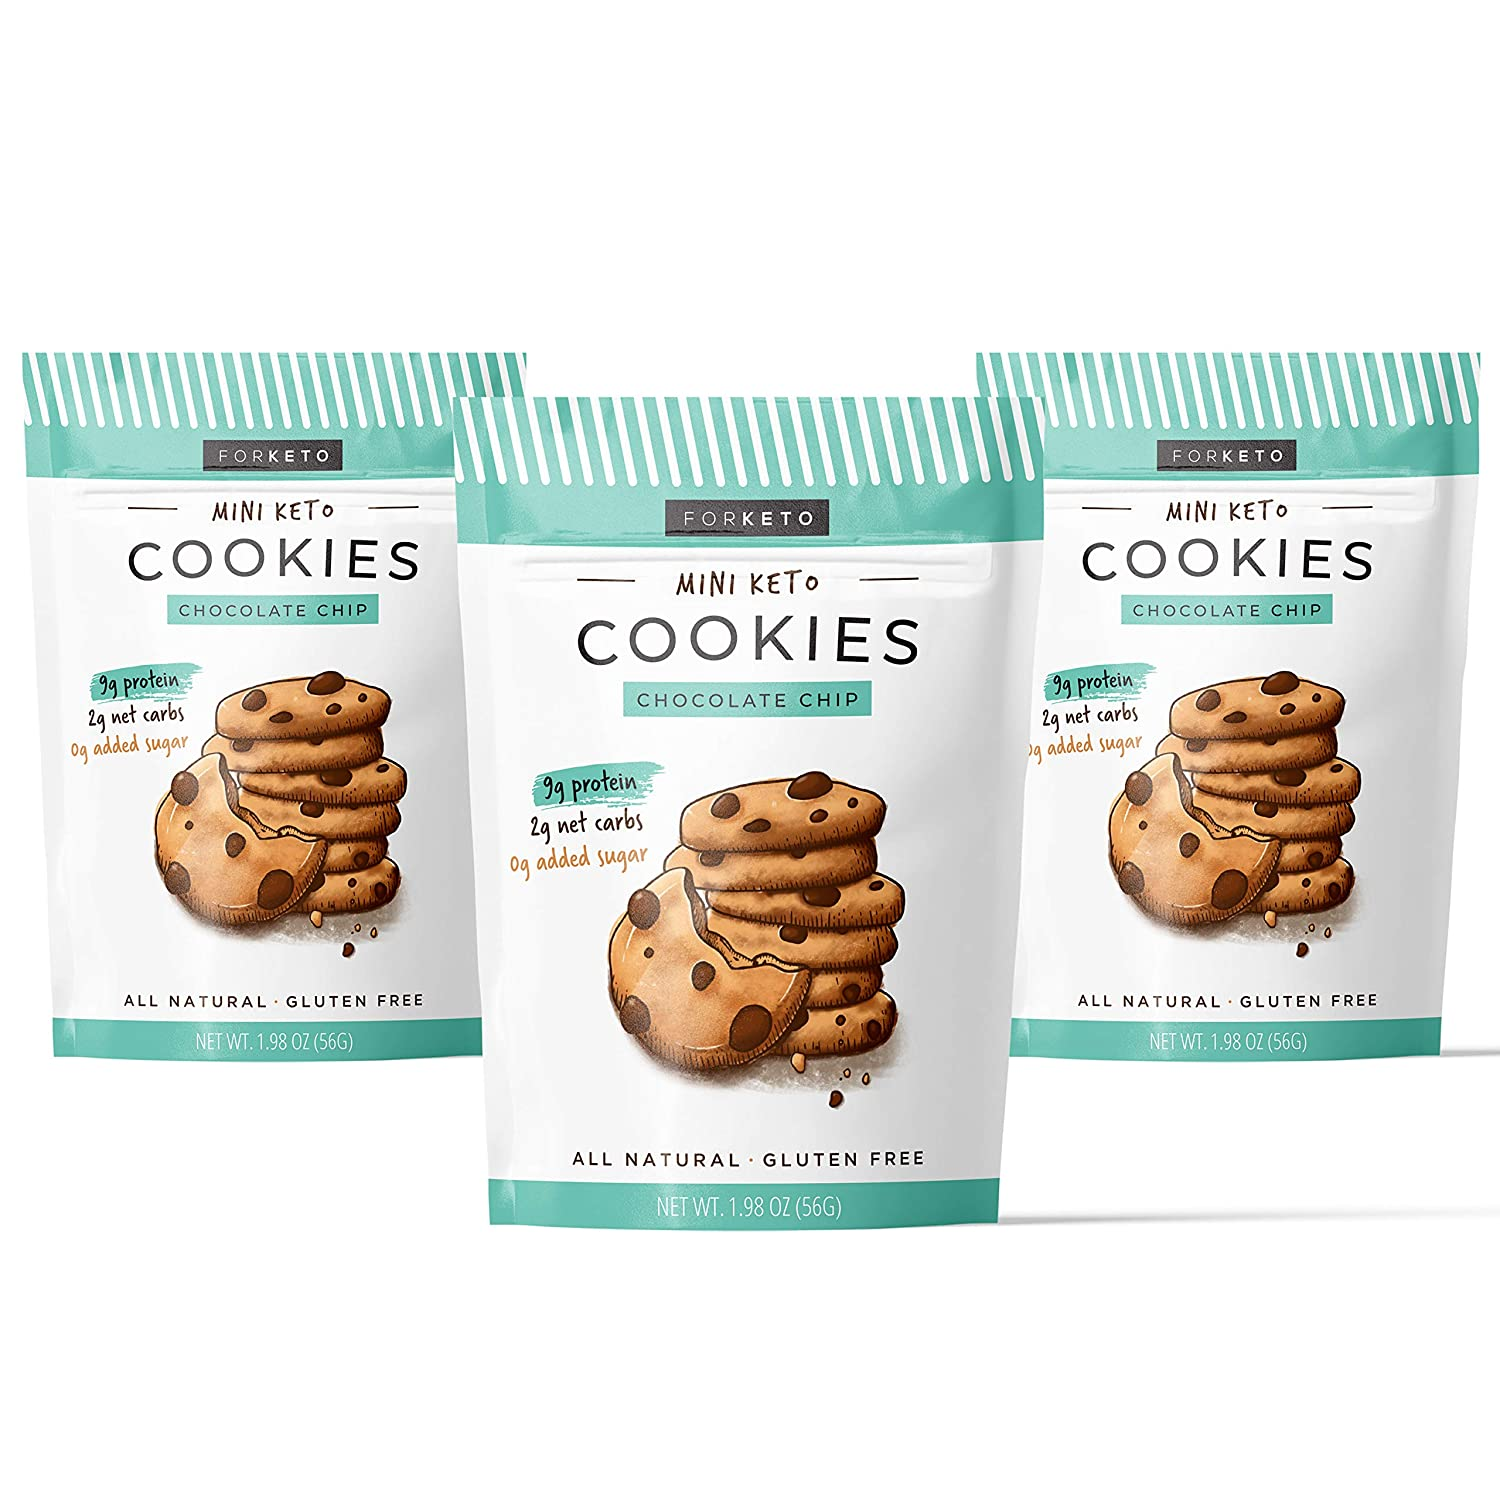 FORKETO Best Keto Chocolate Chip Cookies